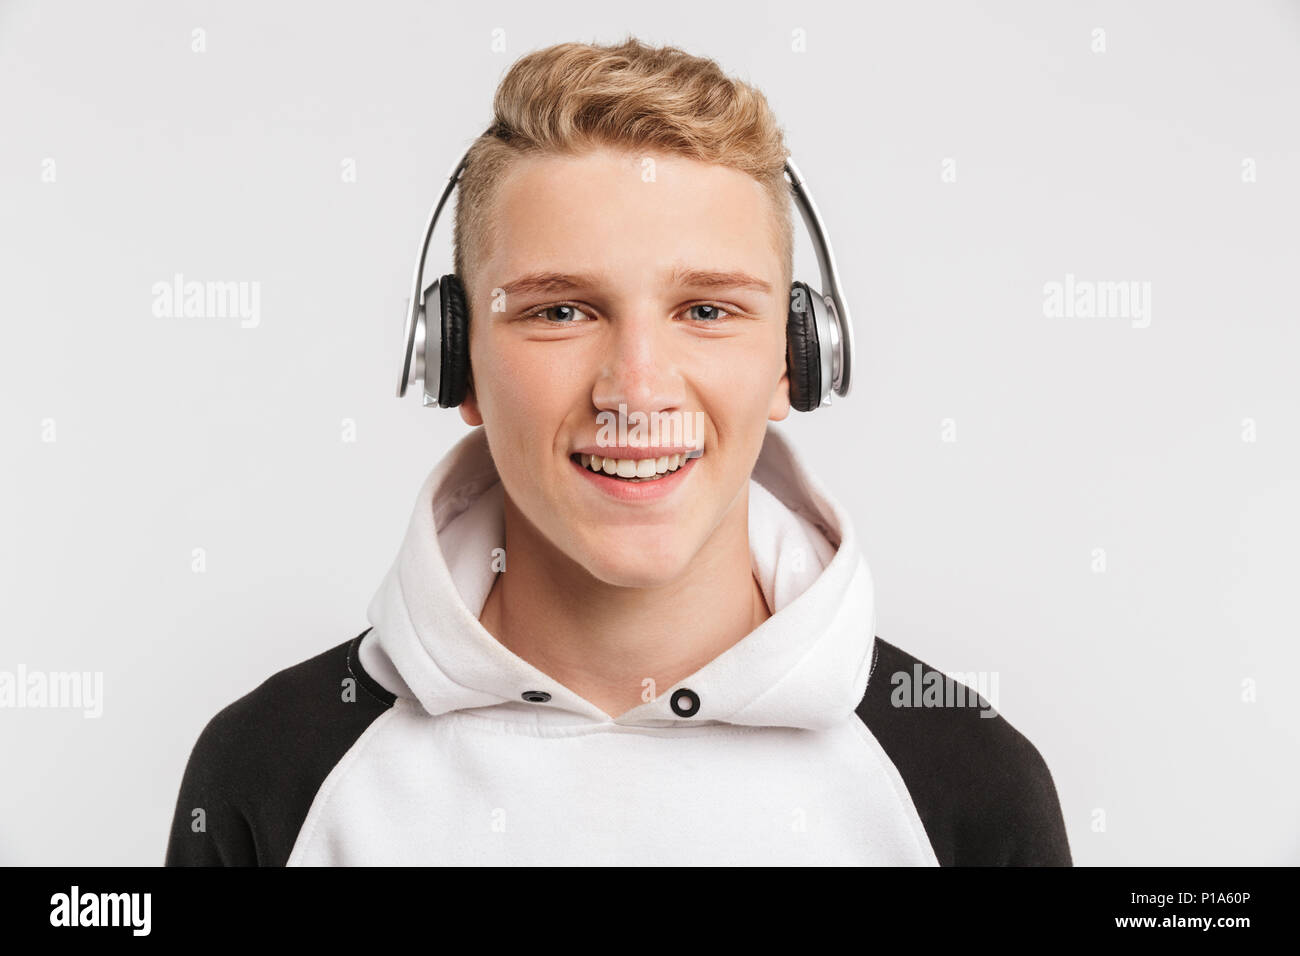 Portrait closeup of teenage boy 16-18 years old wearing hoodie and wireless headphones posing with happy smile isolated over white background - Stock Image